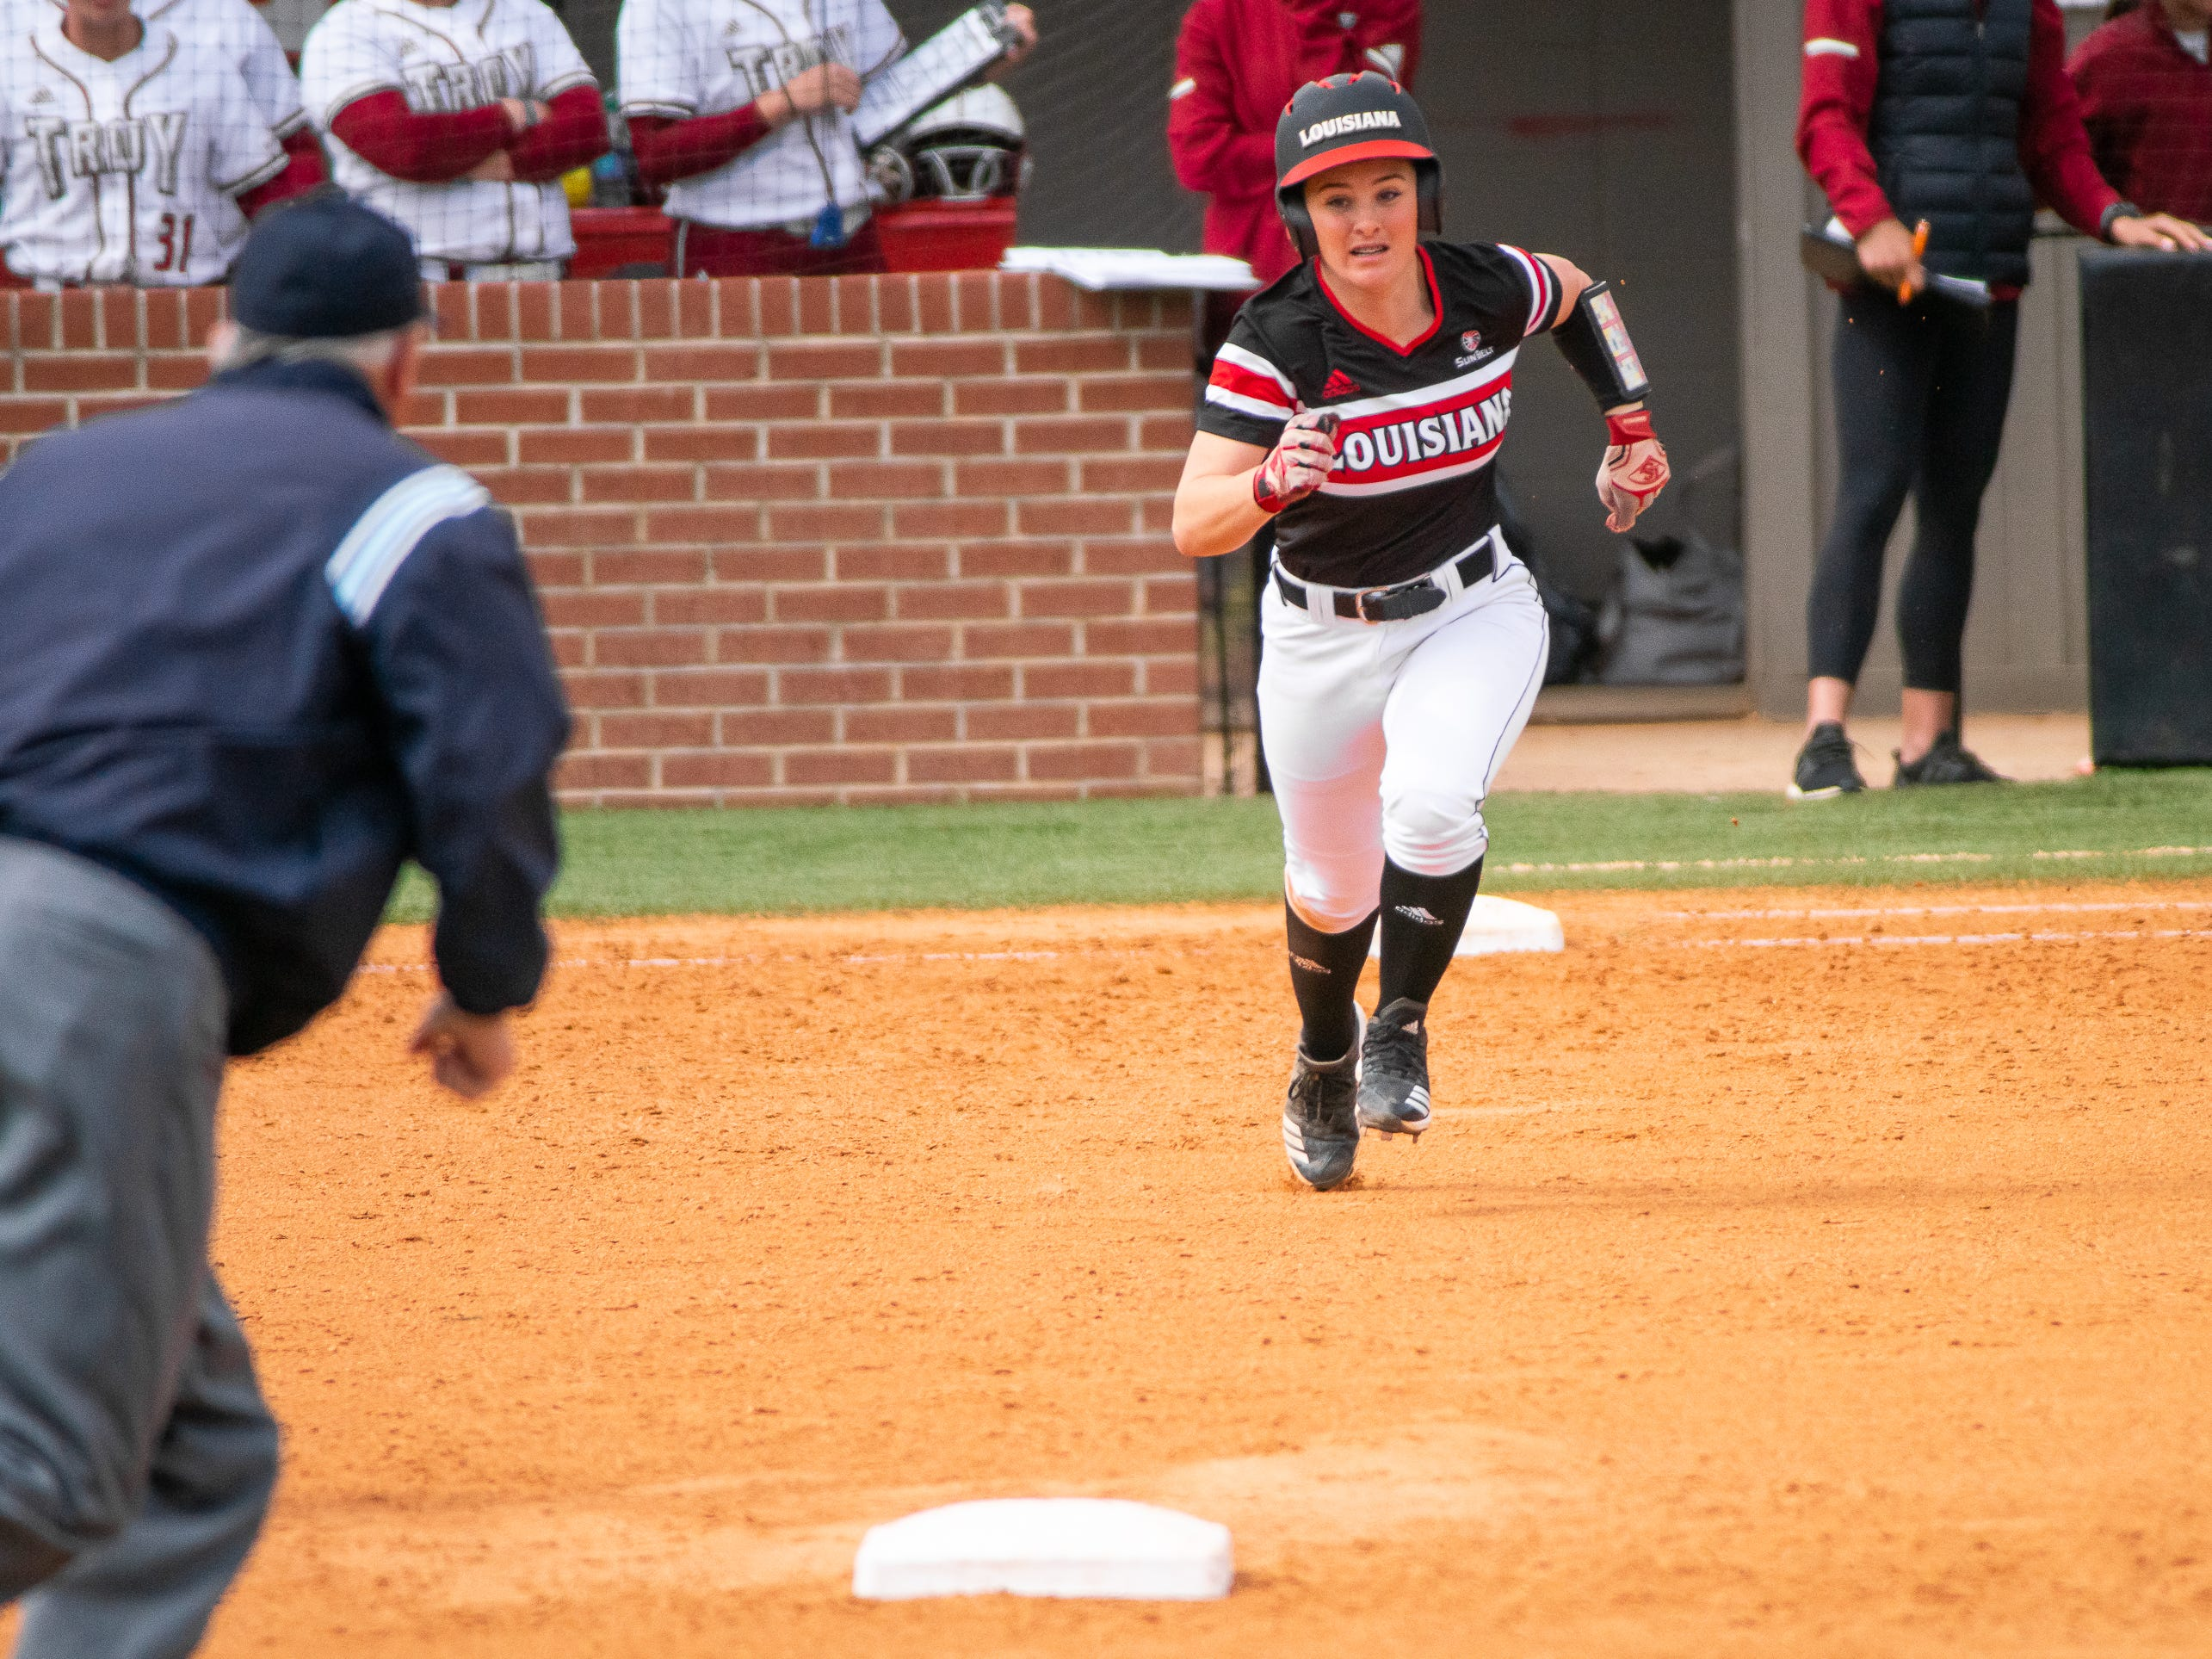 UL's Keeli Milligan sprints to second base as the Ragin' Cajuns take on the Troy Trojans at Yvette Girouard Field at Lamson Park on Saturday, March 16, 2019.